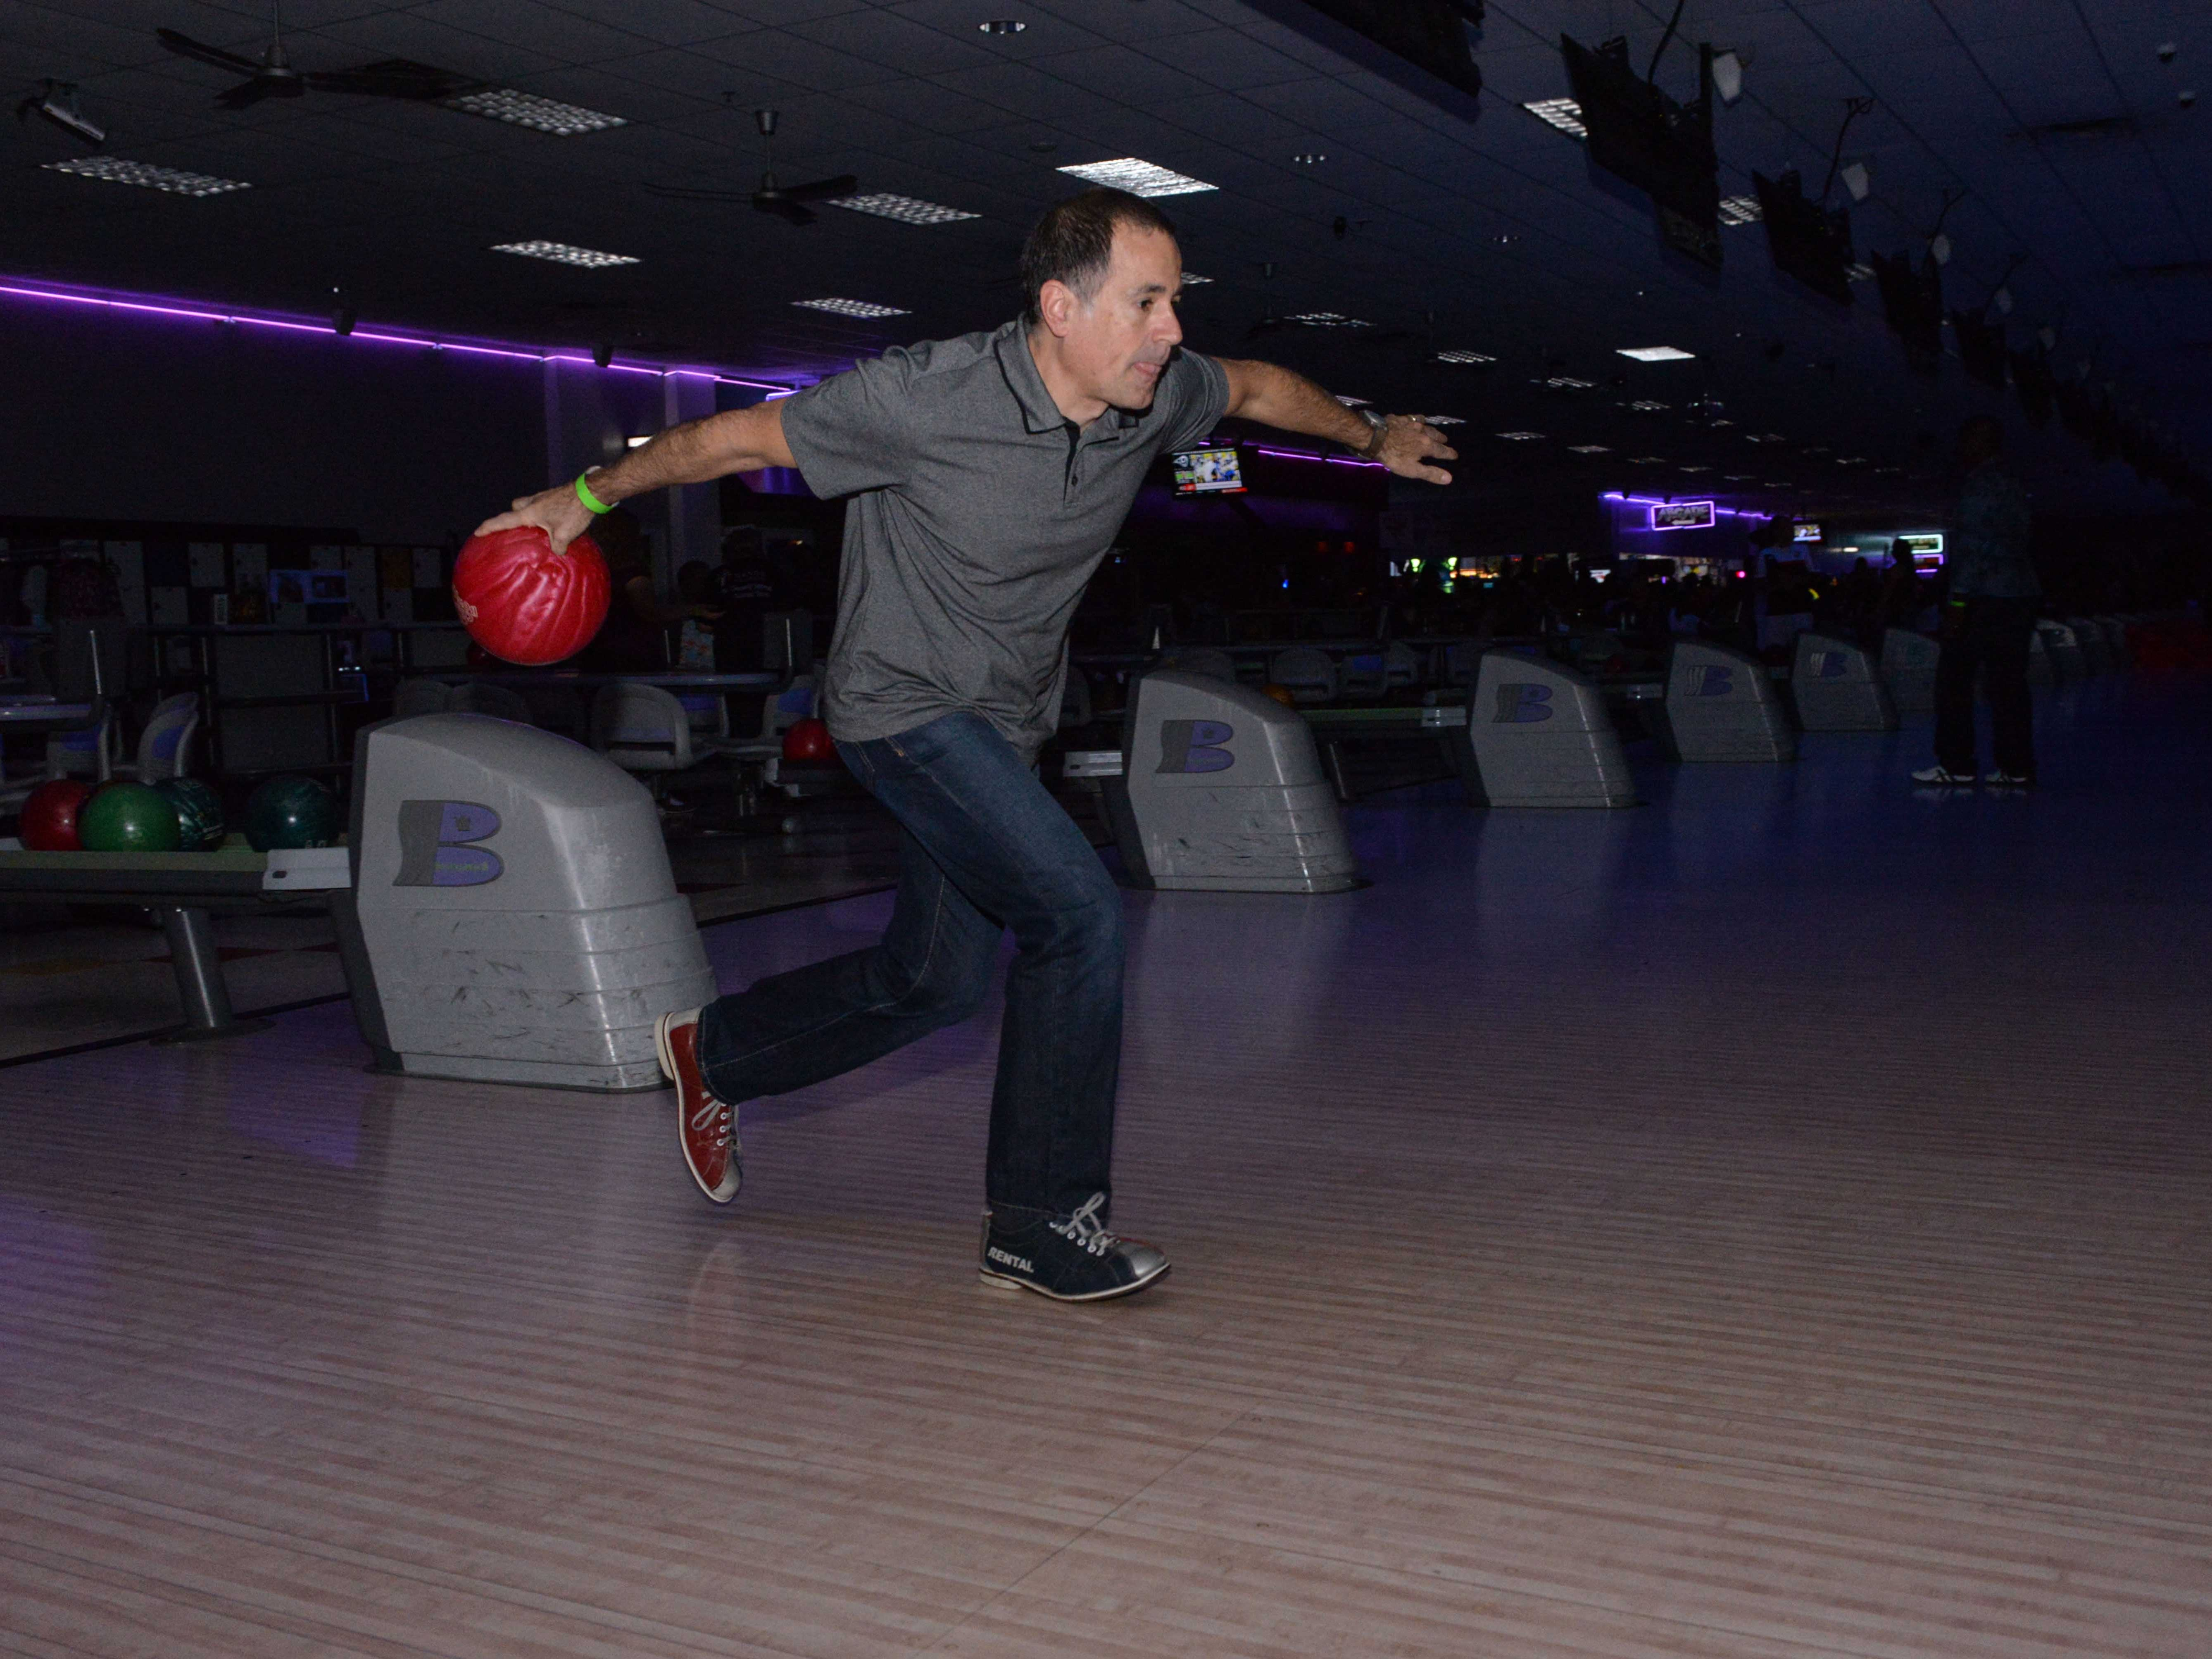 Barry Abraham goes for a strike at the Cosmic Family Fun event  to support HANDSof St. Lucie County.